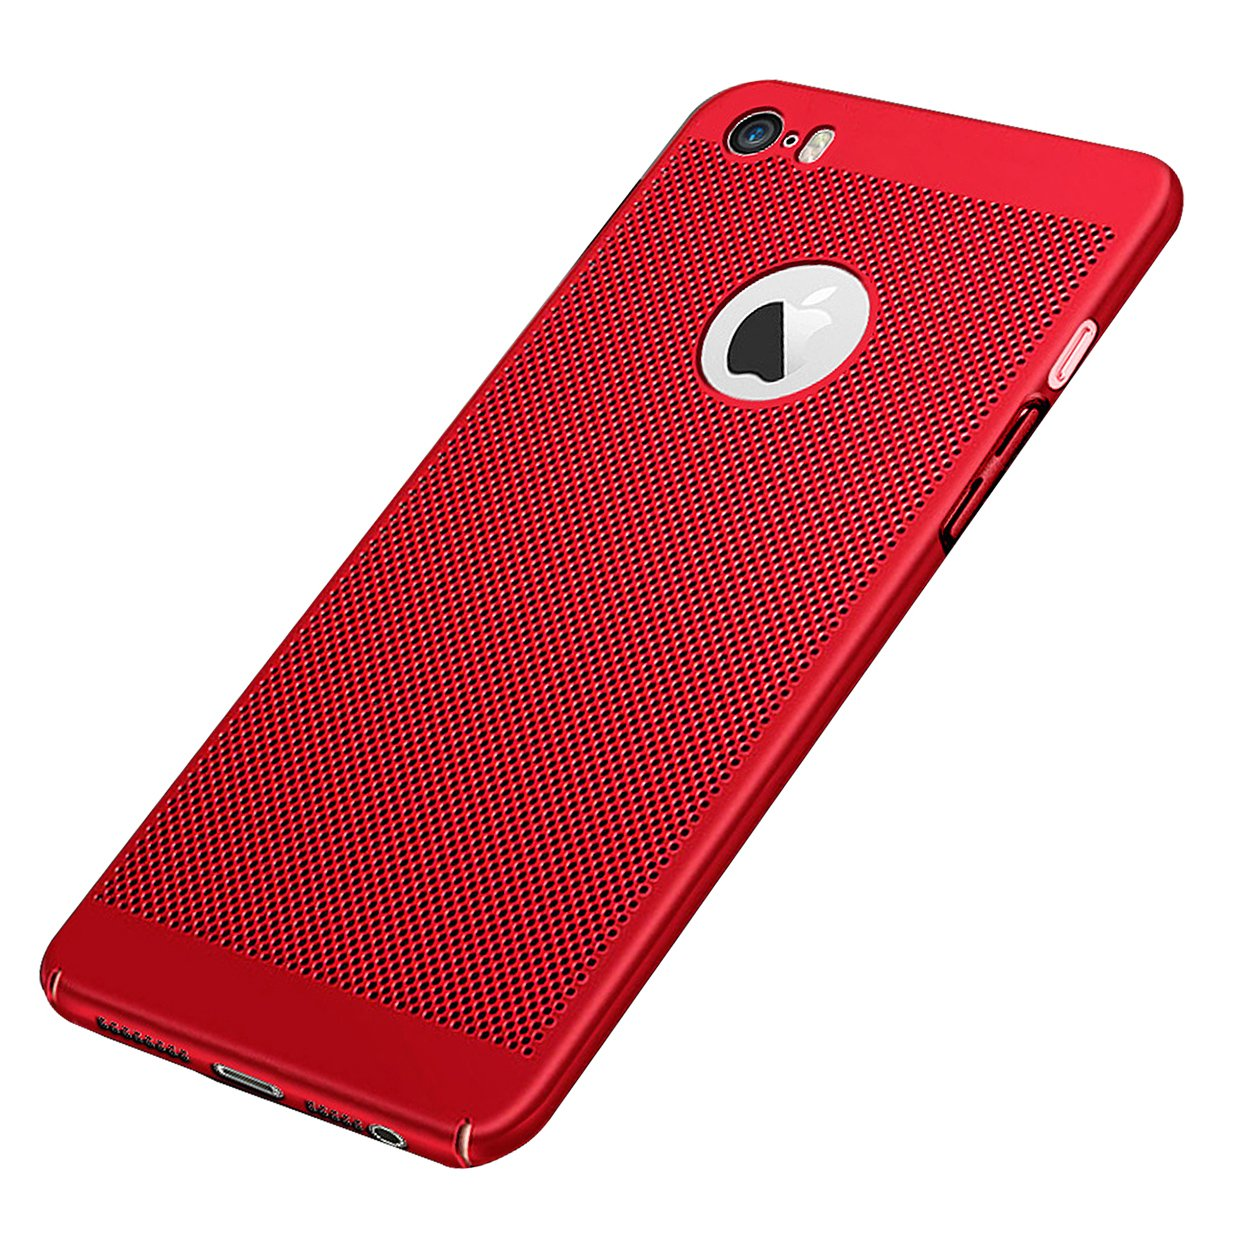 GerTong iPhone 5 5S SE Breathing Case, PC Mesh Design Ultra Slim Thin Breathable Cooling Heat Release Protective Shockproof Back Covers Shell for Apple iPhone 5 / 5S / SE, 4.0 Inch(Red)